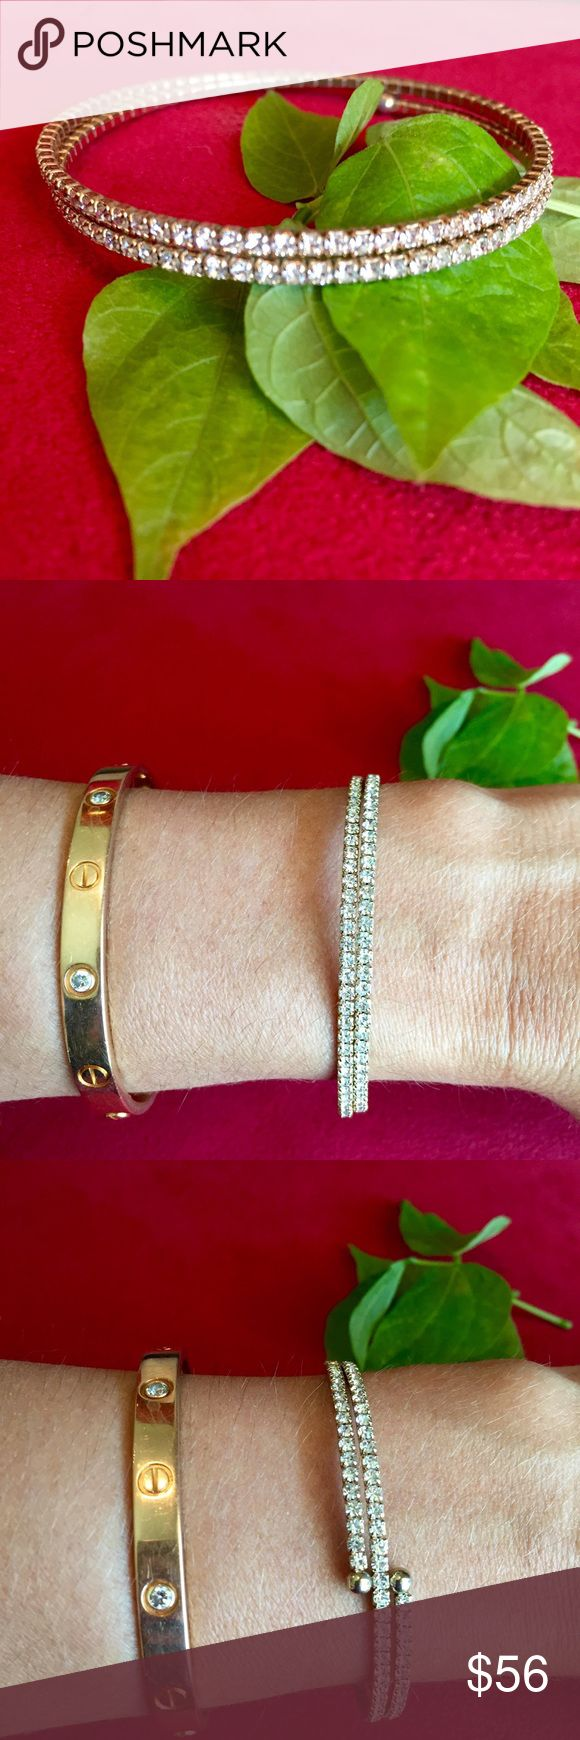 Anthropologie UK rose gold diamanté wrap bracelet Anthropologie UK designer selection rose gold tone (non allergenic) diamanté adjustable to fit all sizes double wrap bracelet. (Could also be worn on the upper arm) Anthropologie Jewelry Bracelets